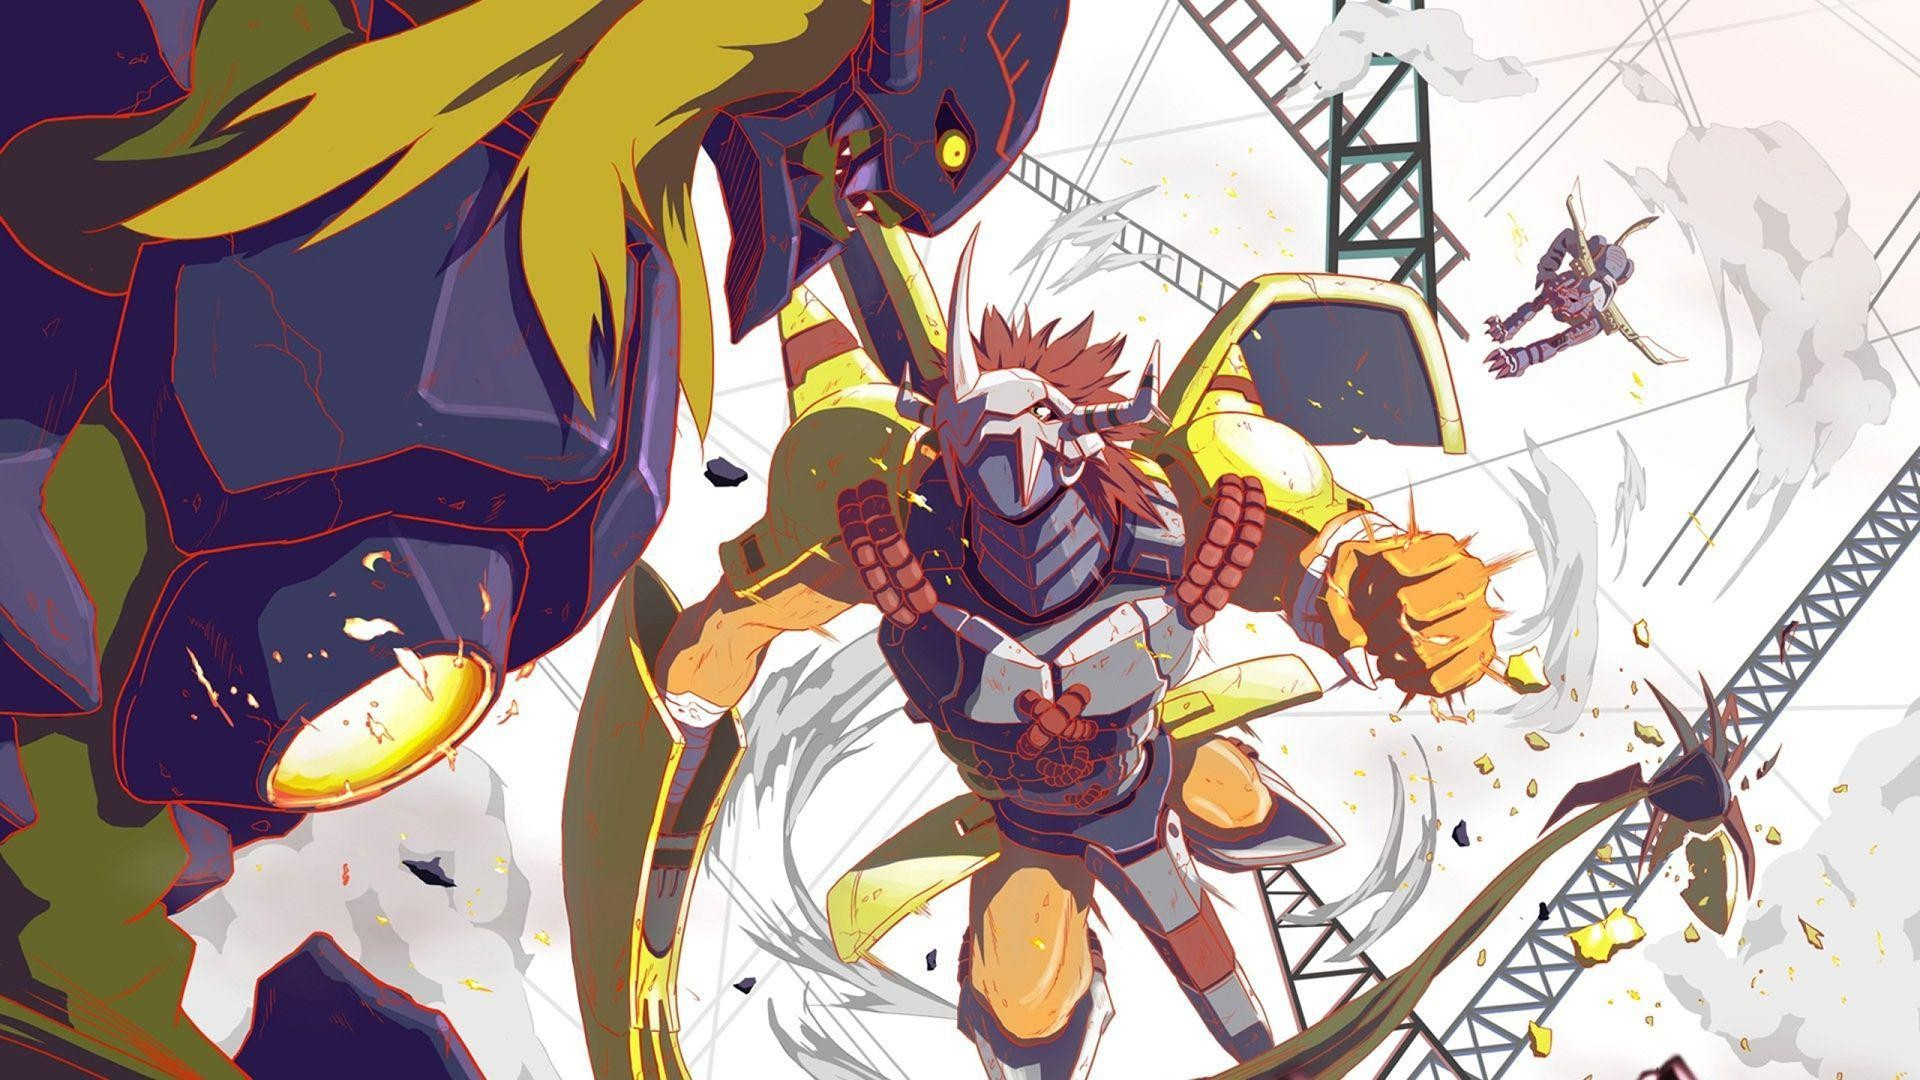 Digimon Wallpaper Download Free Cool High Resolution Wallpapers